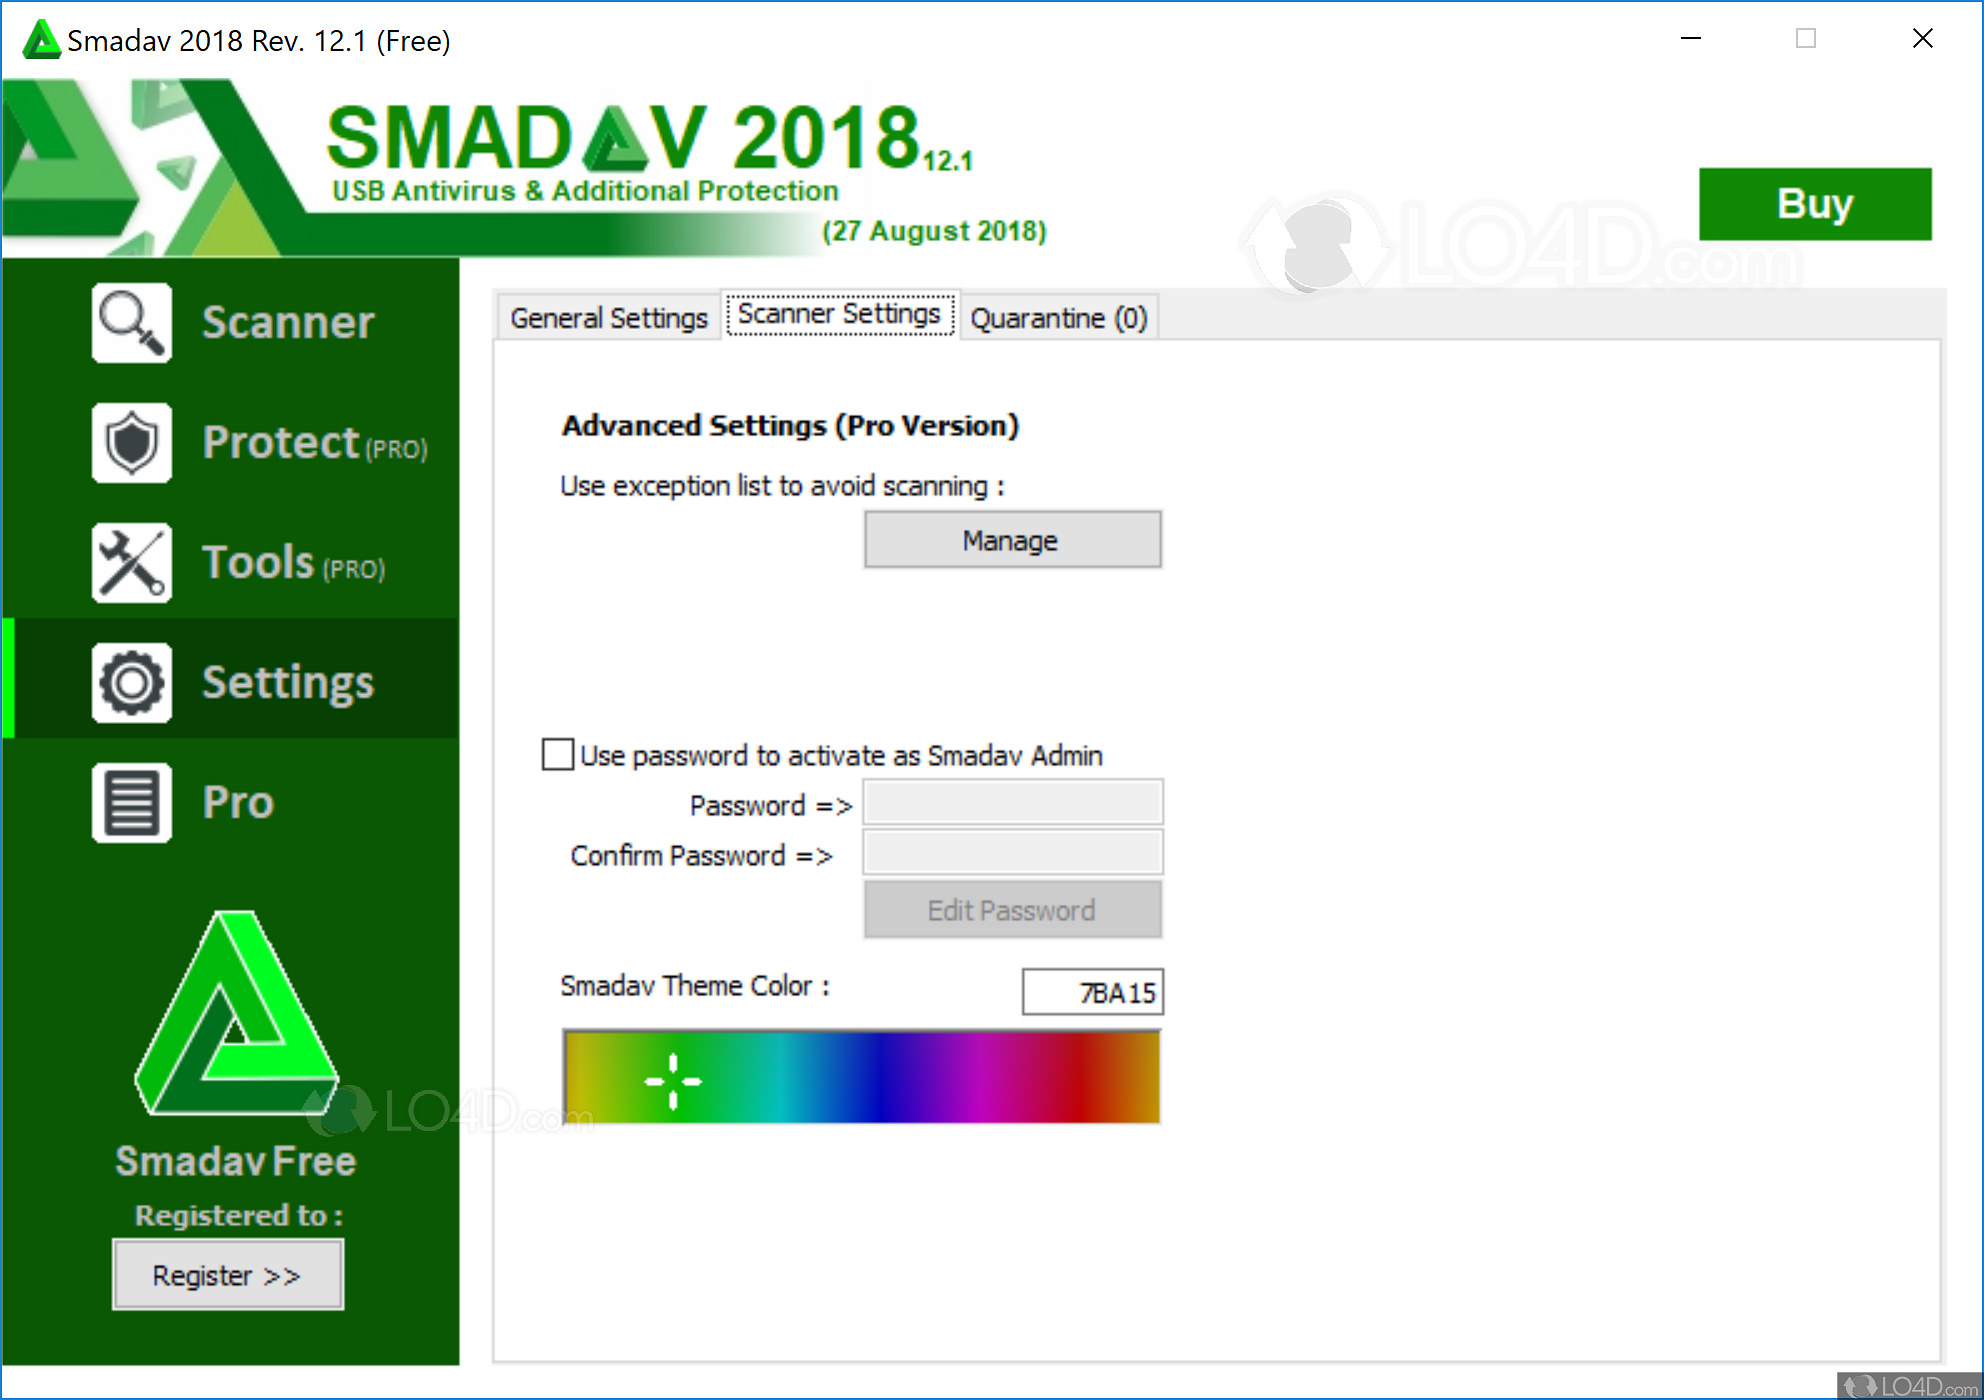 Compare smadav vs baidu free antivirus (antivirus comparison).